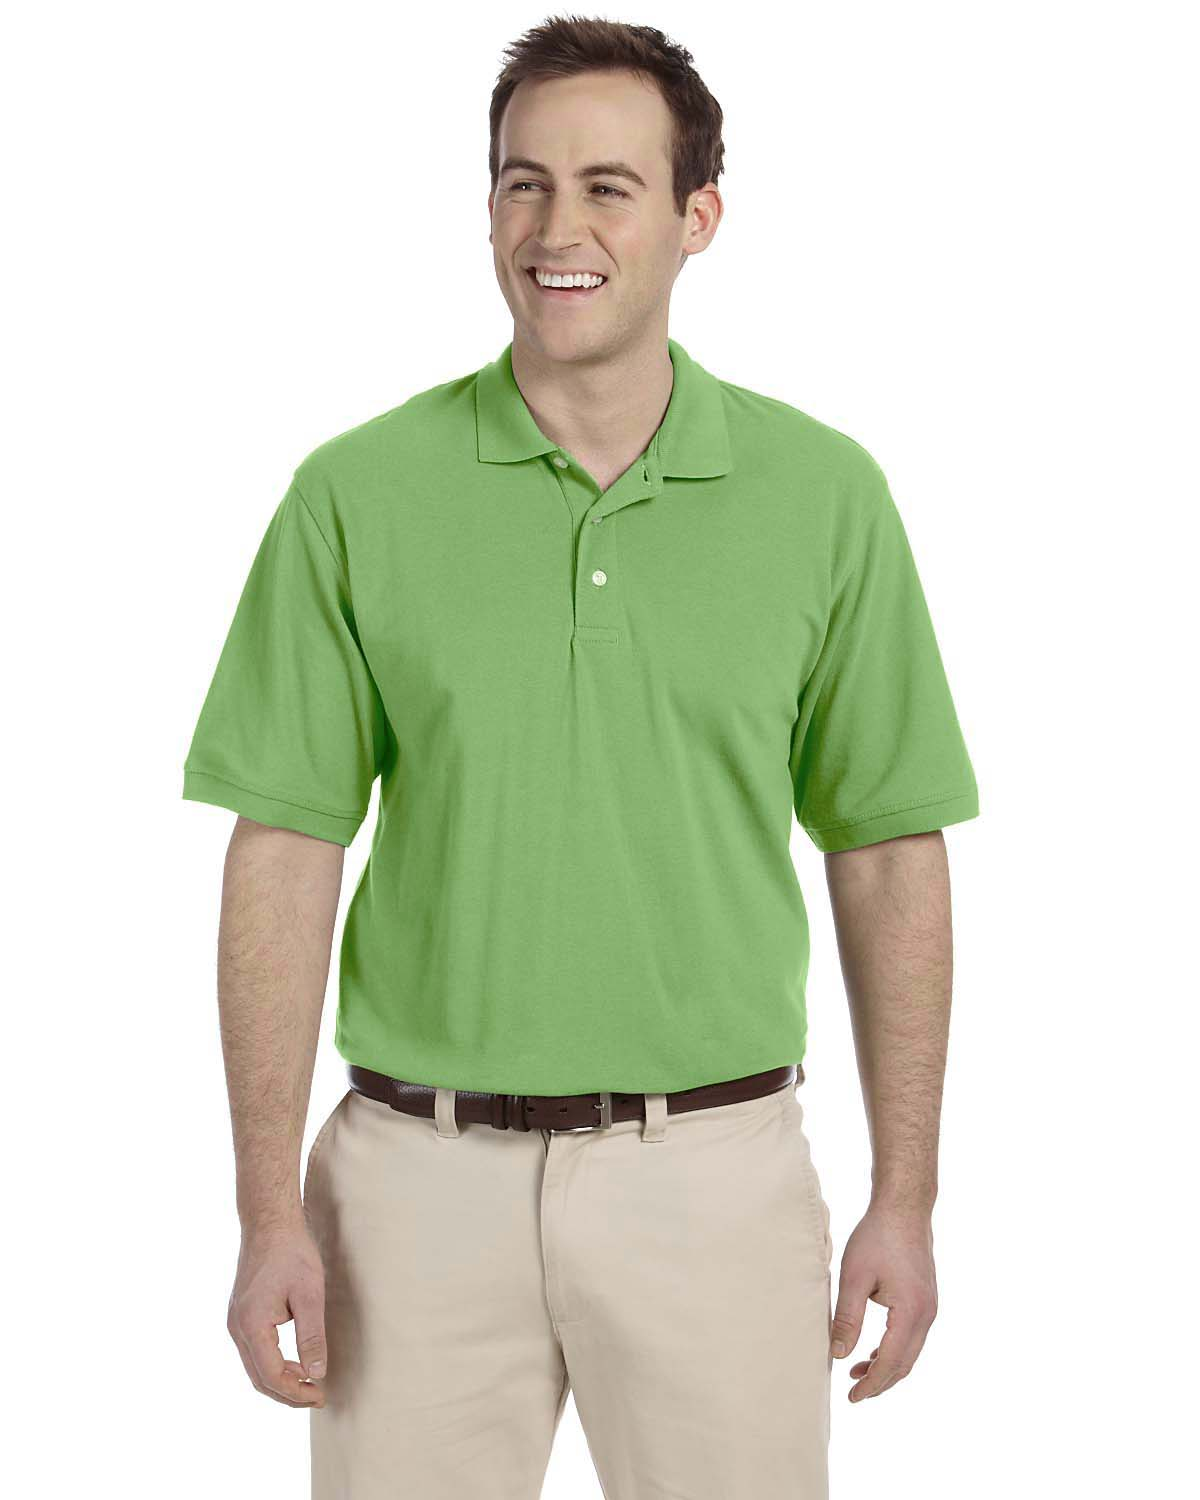 New harriton easy blend short sleeve big size golf polo for Big size polo shirts